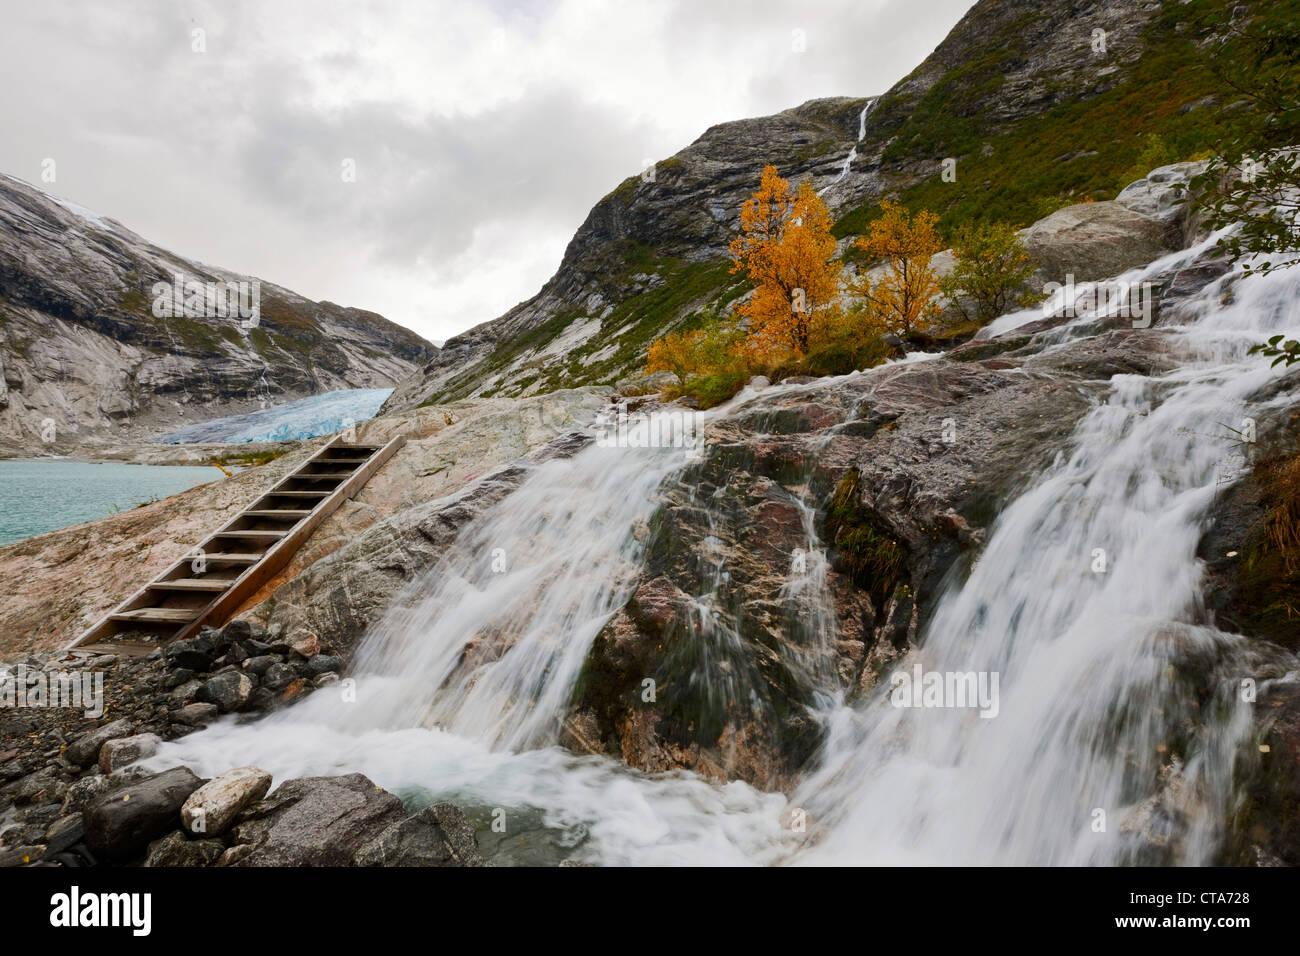 Ladder on the way to the Nigardsbreen, view of the glacier tongue, Autumn, Jostedalen, Nigardsbreen, Jostedalsbreen - Stock Image